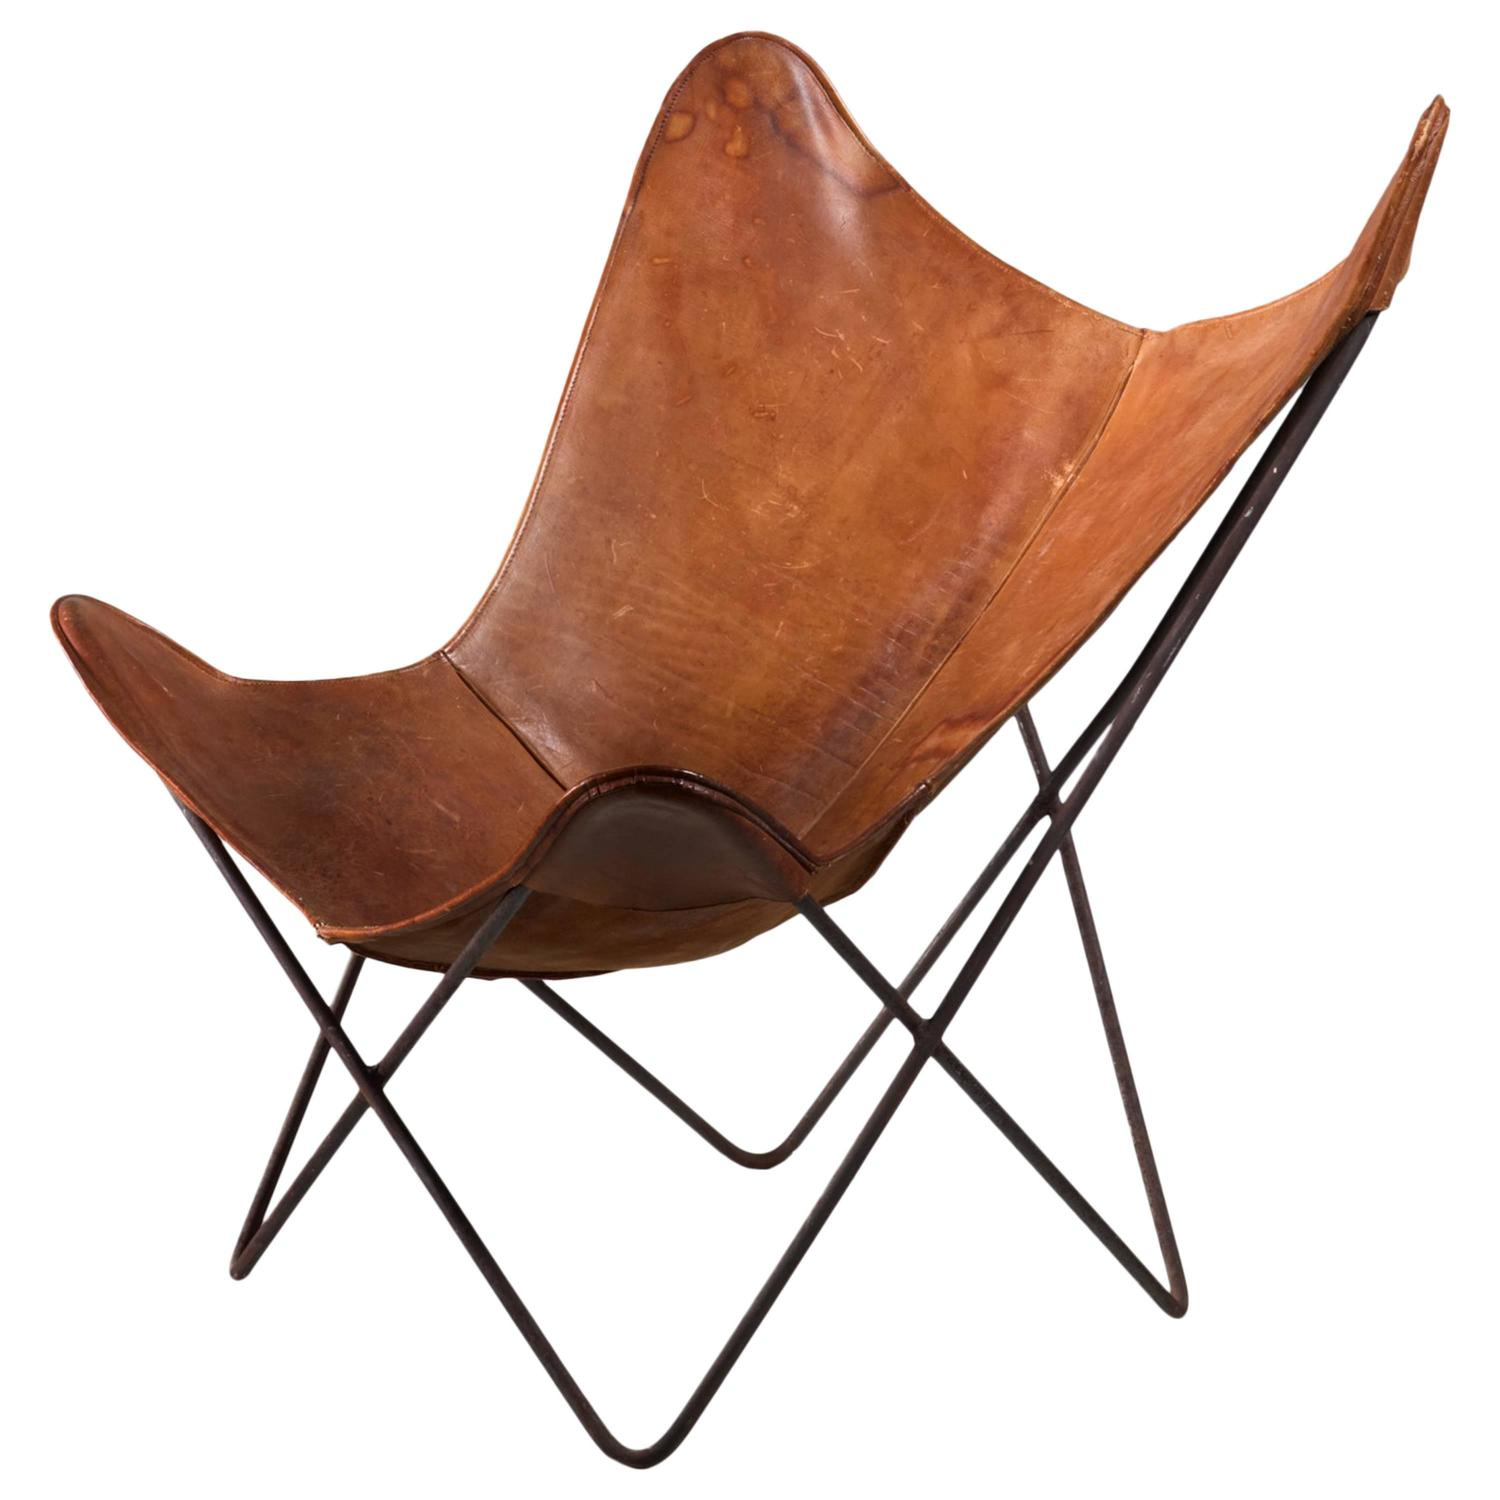 jorge ferrari hardoy butterfly chair for knoll 1950s for sale at 1stdibs. Black Bedroom Furniture Sets. Home Design Ideas